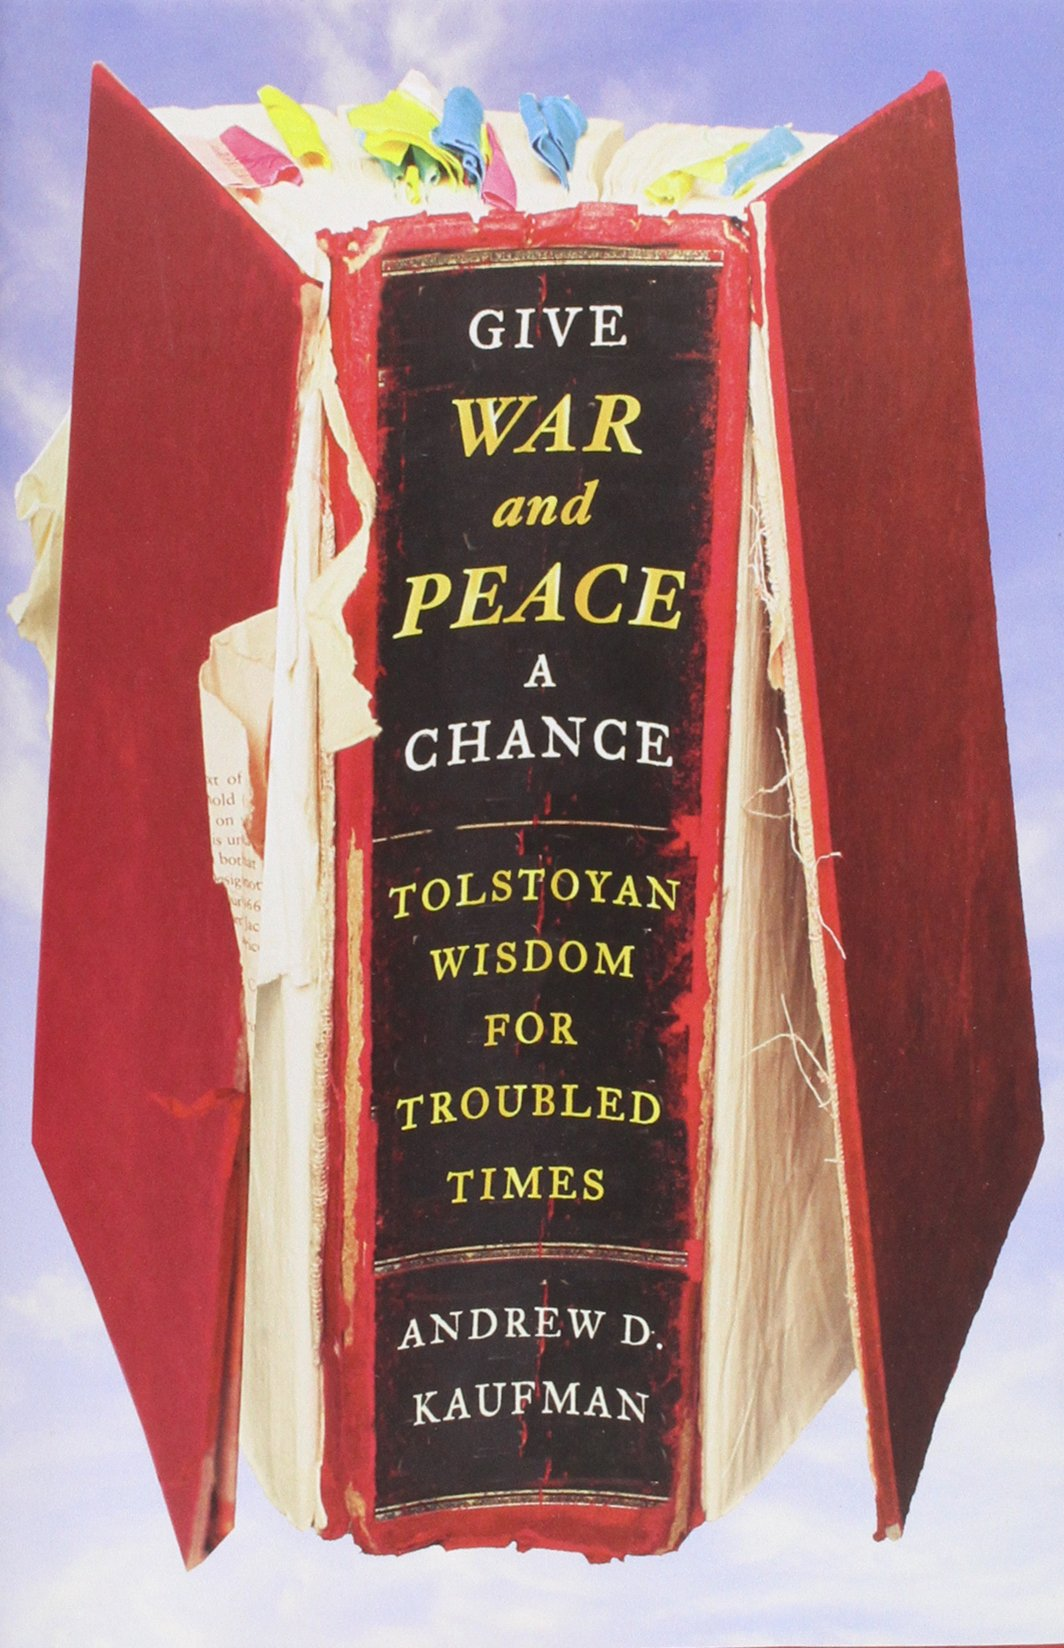 war and peace oxford world s classics co uk leo tolstoy give war and peace a chance tolstoyan wisdom for troubled times